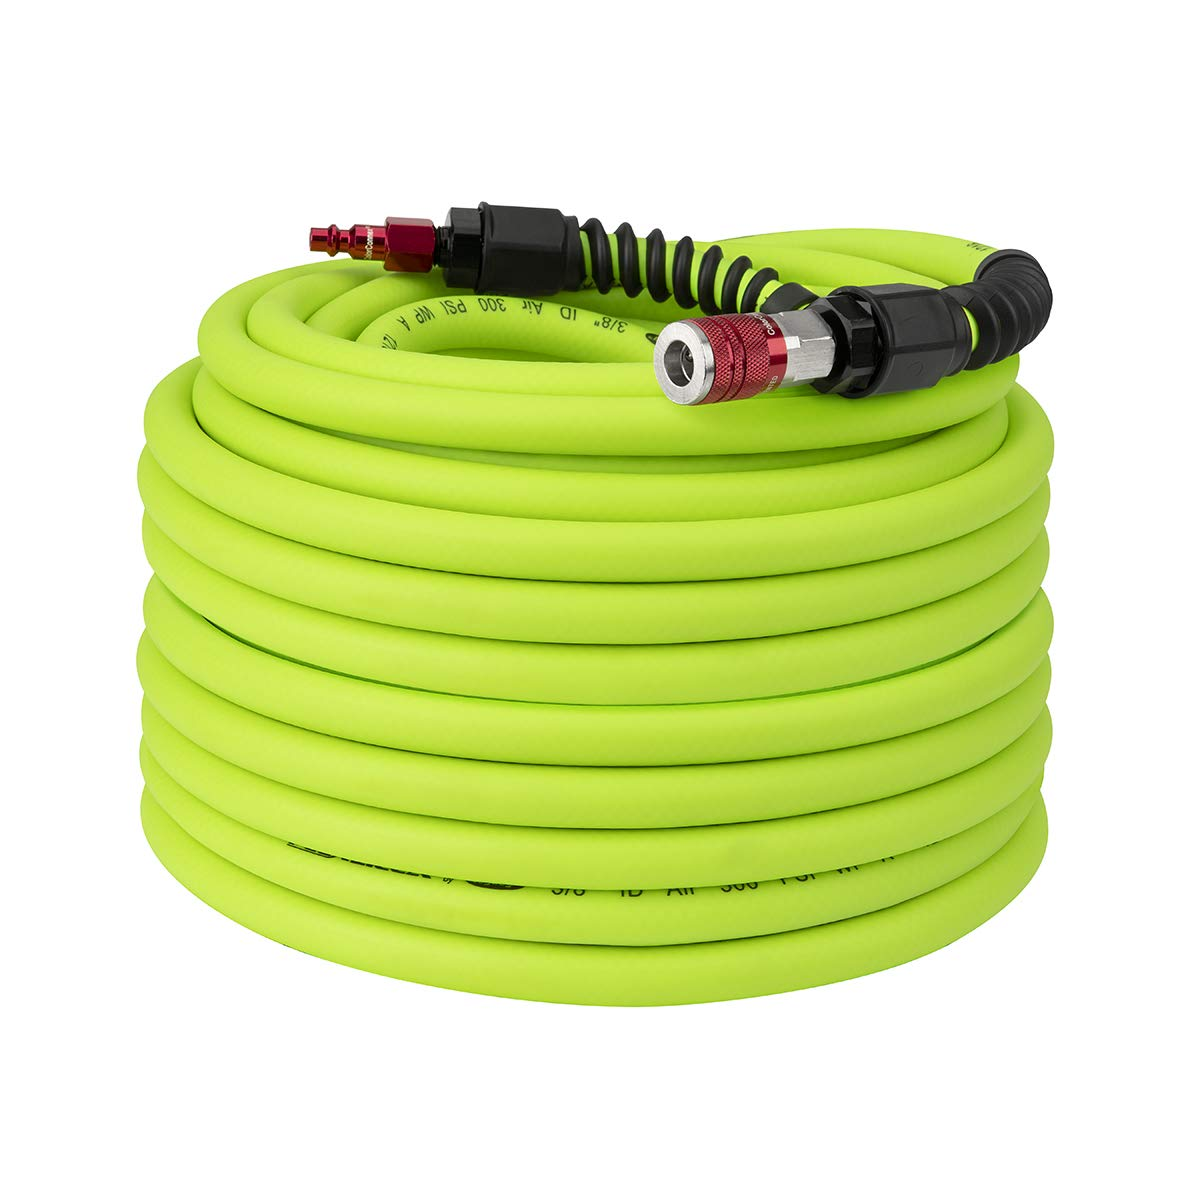 Flexzilla Pro Air Hose with ColorConnex Industrial Type D Coupler and Plug, 3/8 in. x 100 ft, Heavy Duty, Lightweight, Hybrid, ZillaGreen - HFZP38100YW2-D